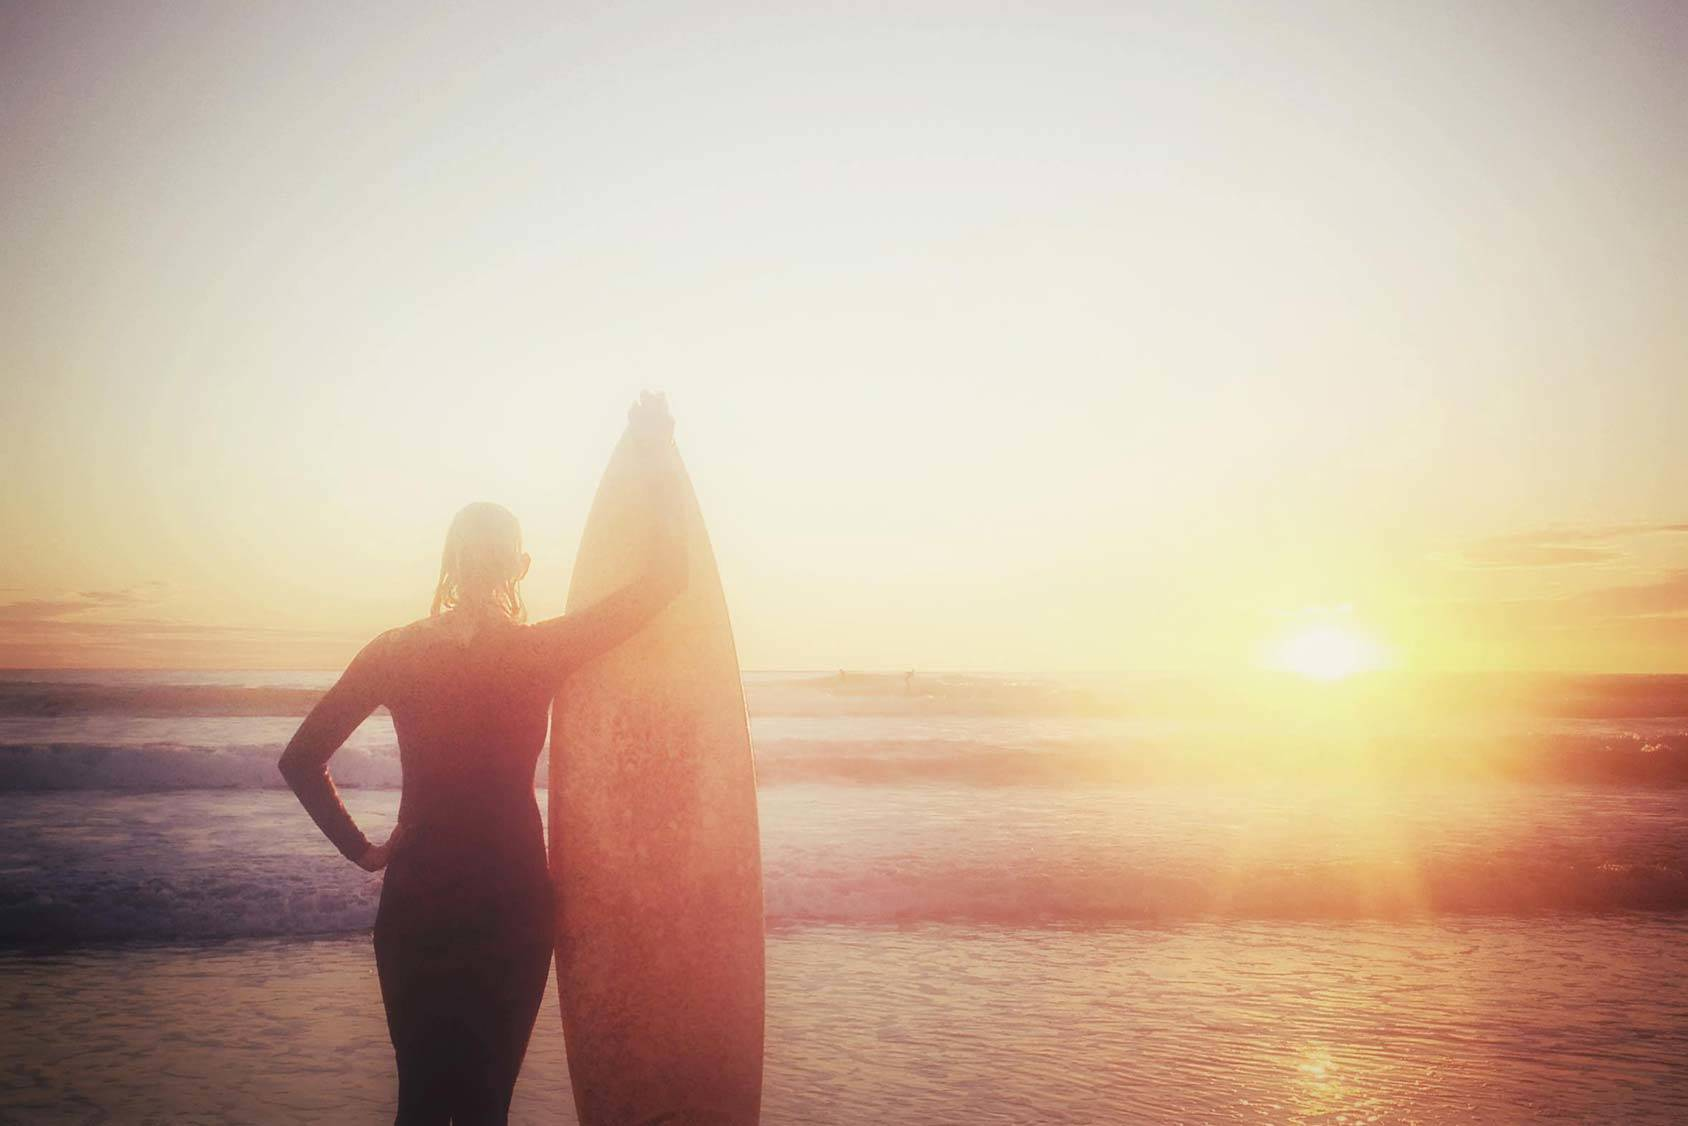 Garance Doré shares her love for surfing and her 3 tips for getting better at it, Getty Images.